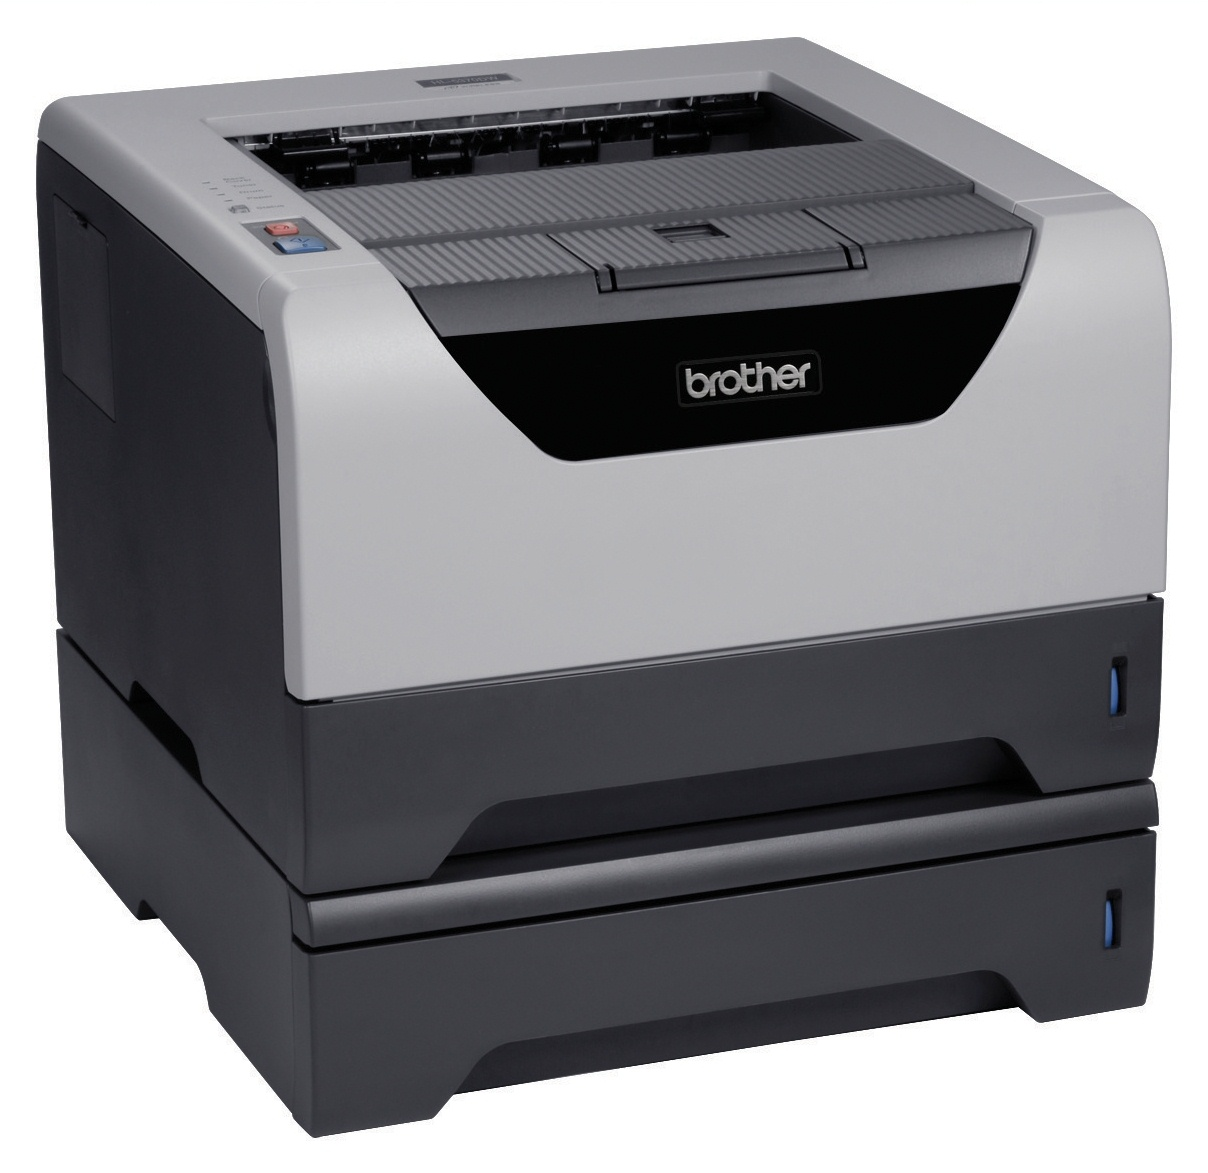 Brother Hl 5250dn Driver Free Download For Windows 7